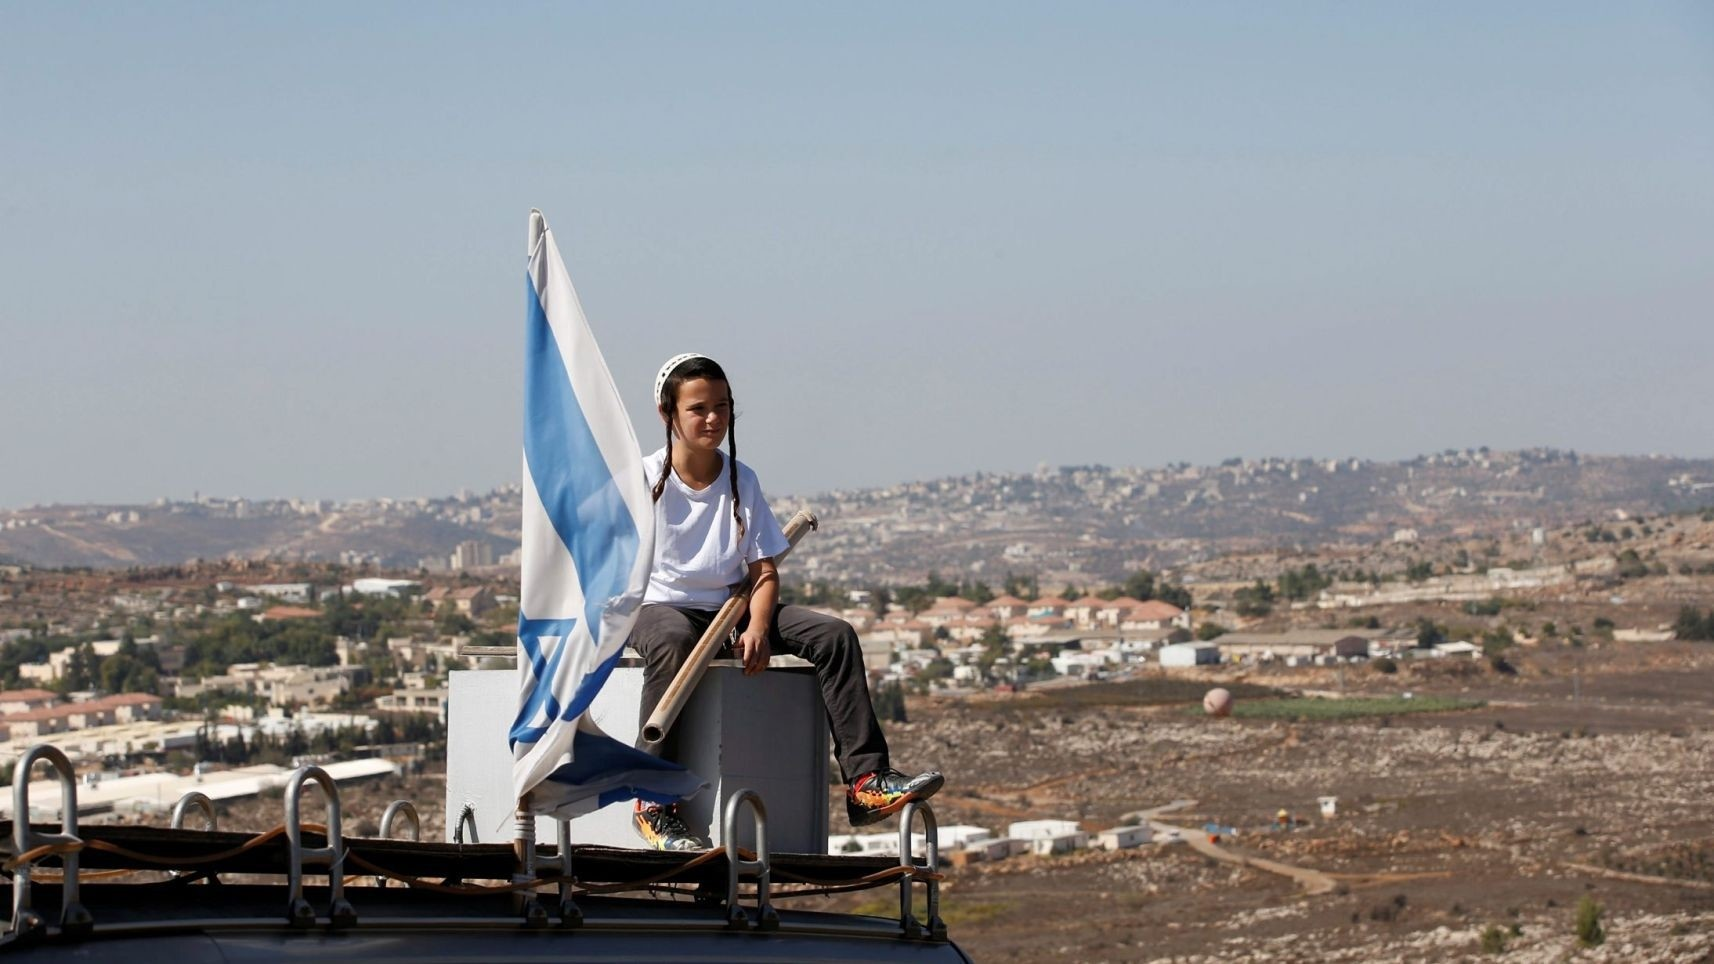 A boy sits on the roof of a vehicle at the entrance to the settler outpost of Amona in the West Bank (Reuters Photo)